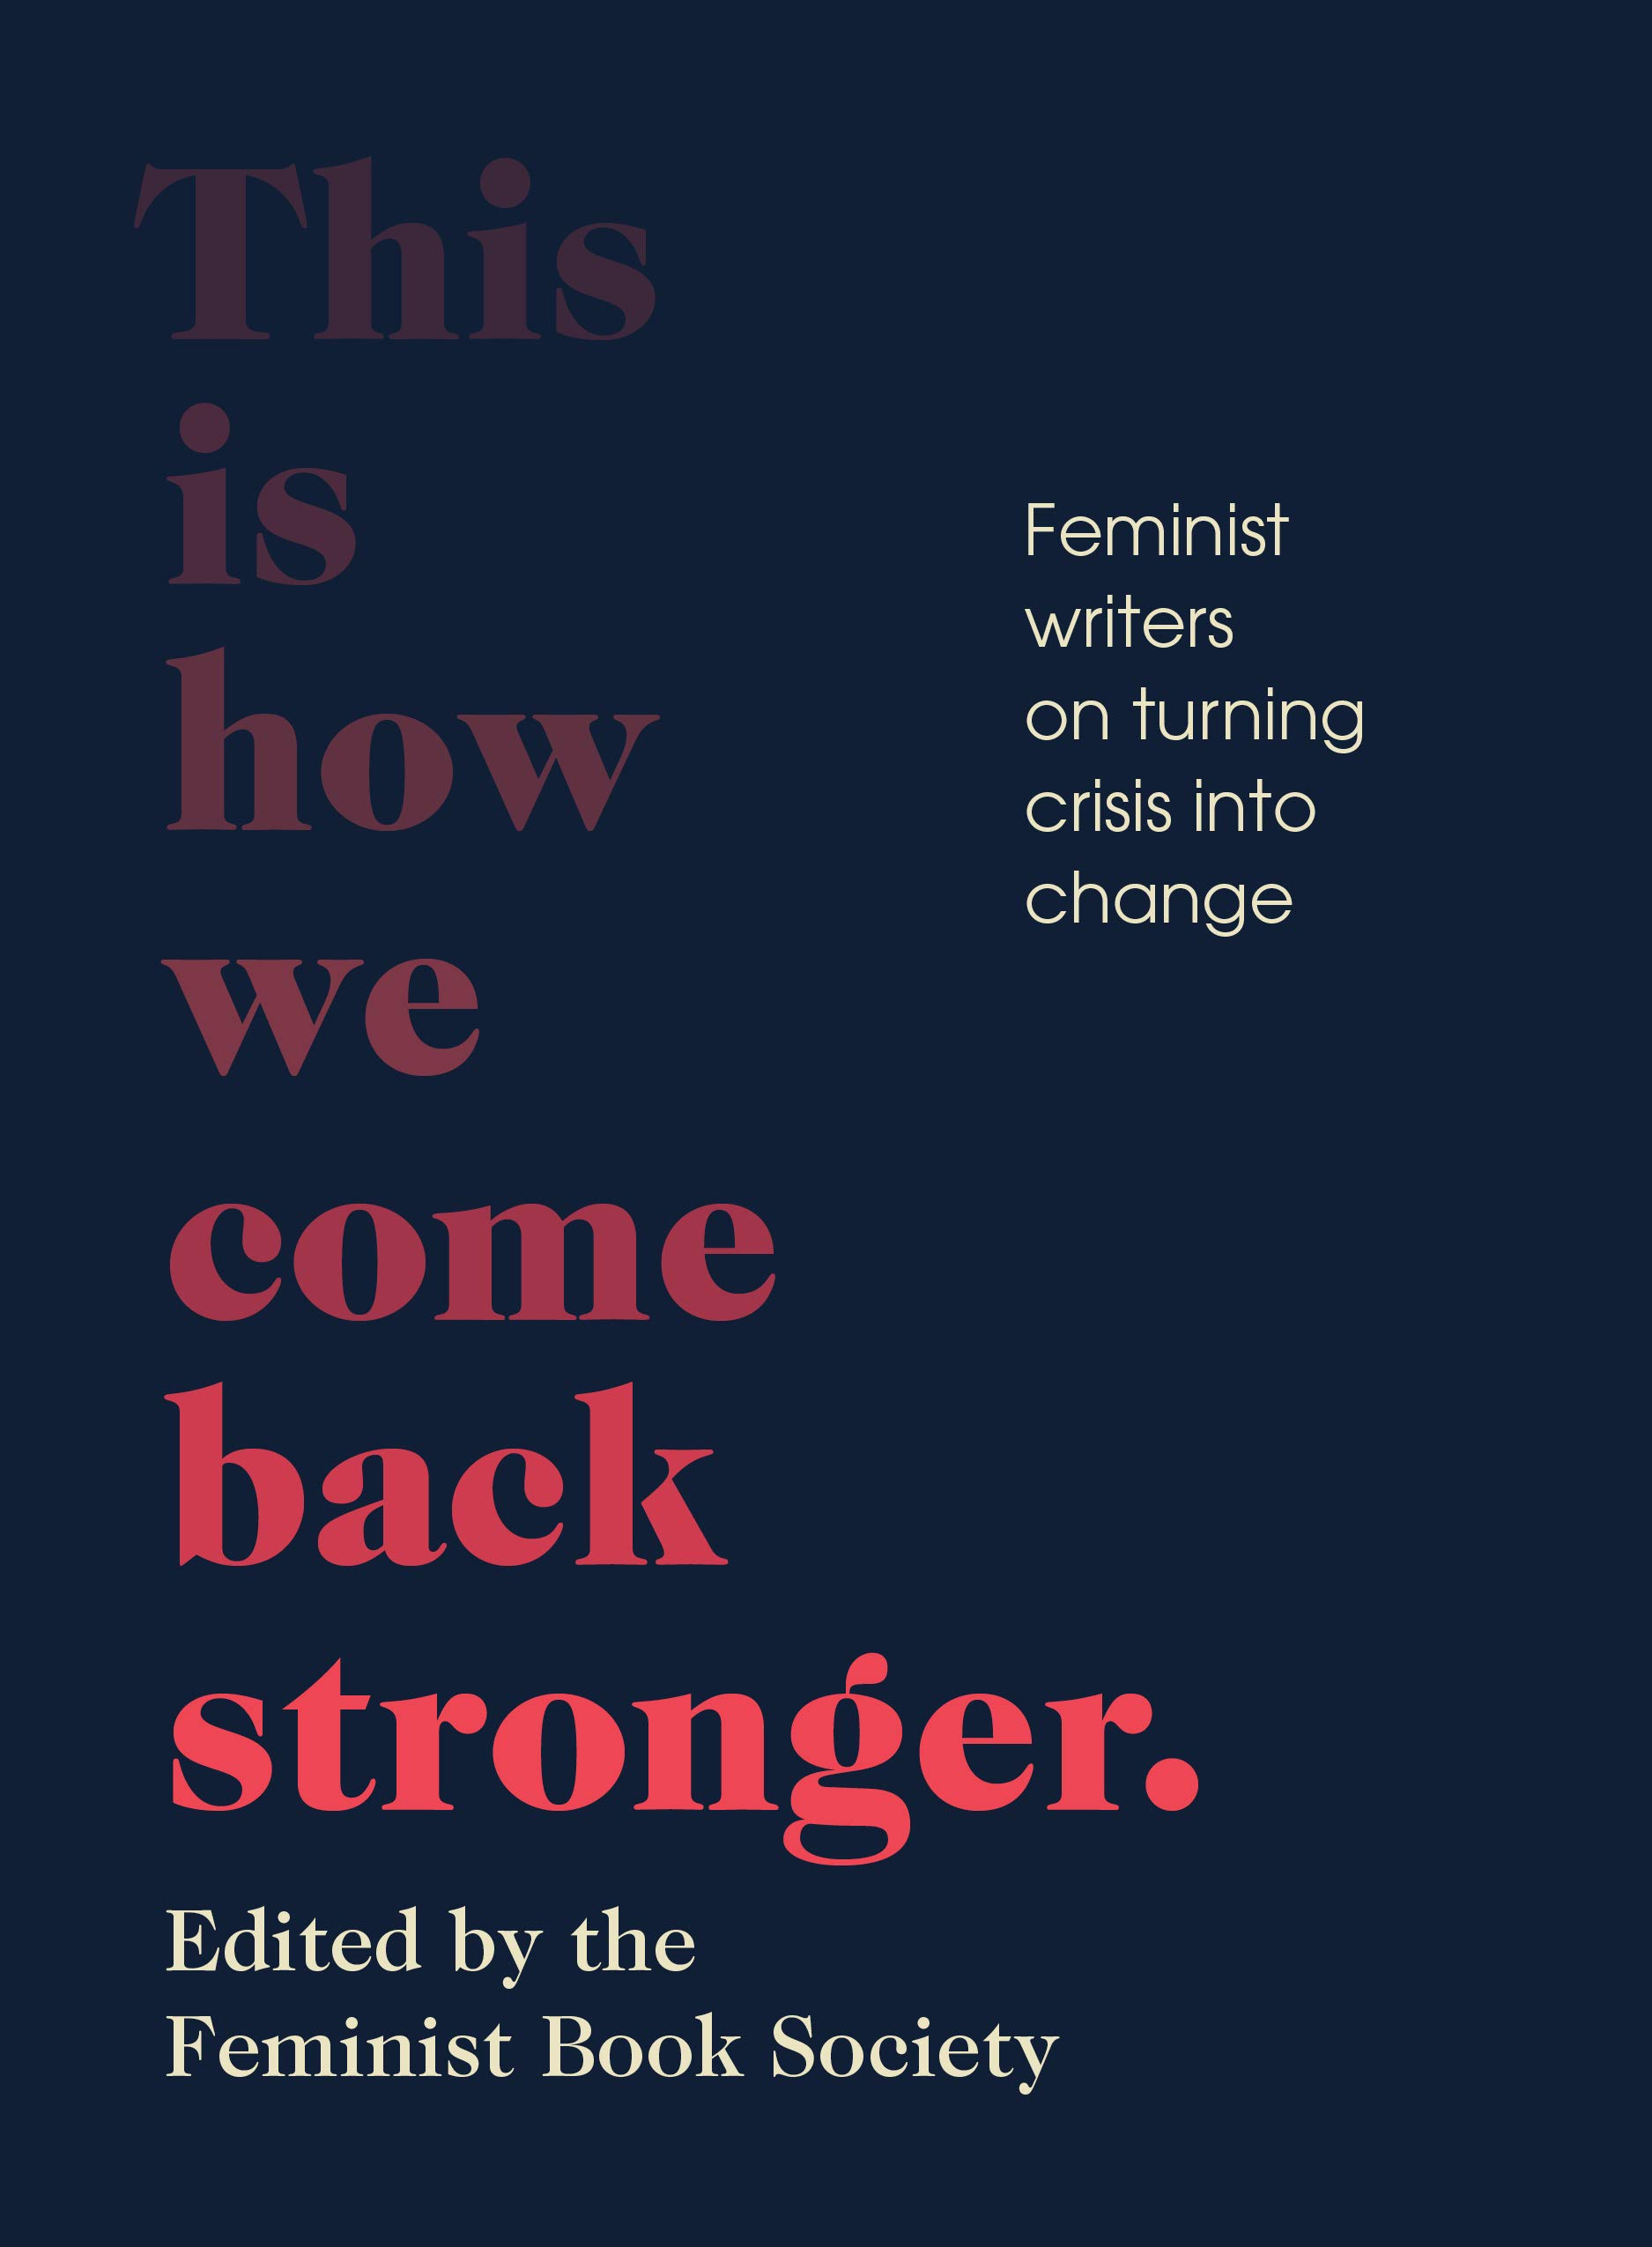 This Is How We Come Back Stronger: Feminist Writers on Turning Crisis into Change